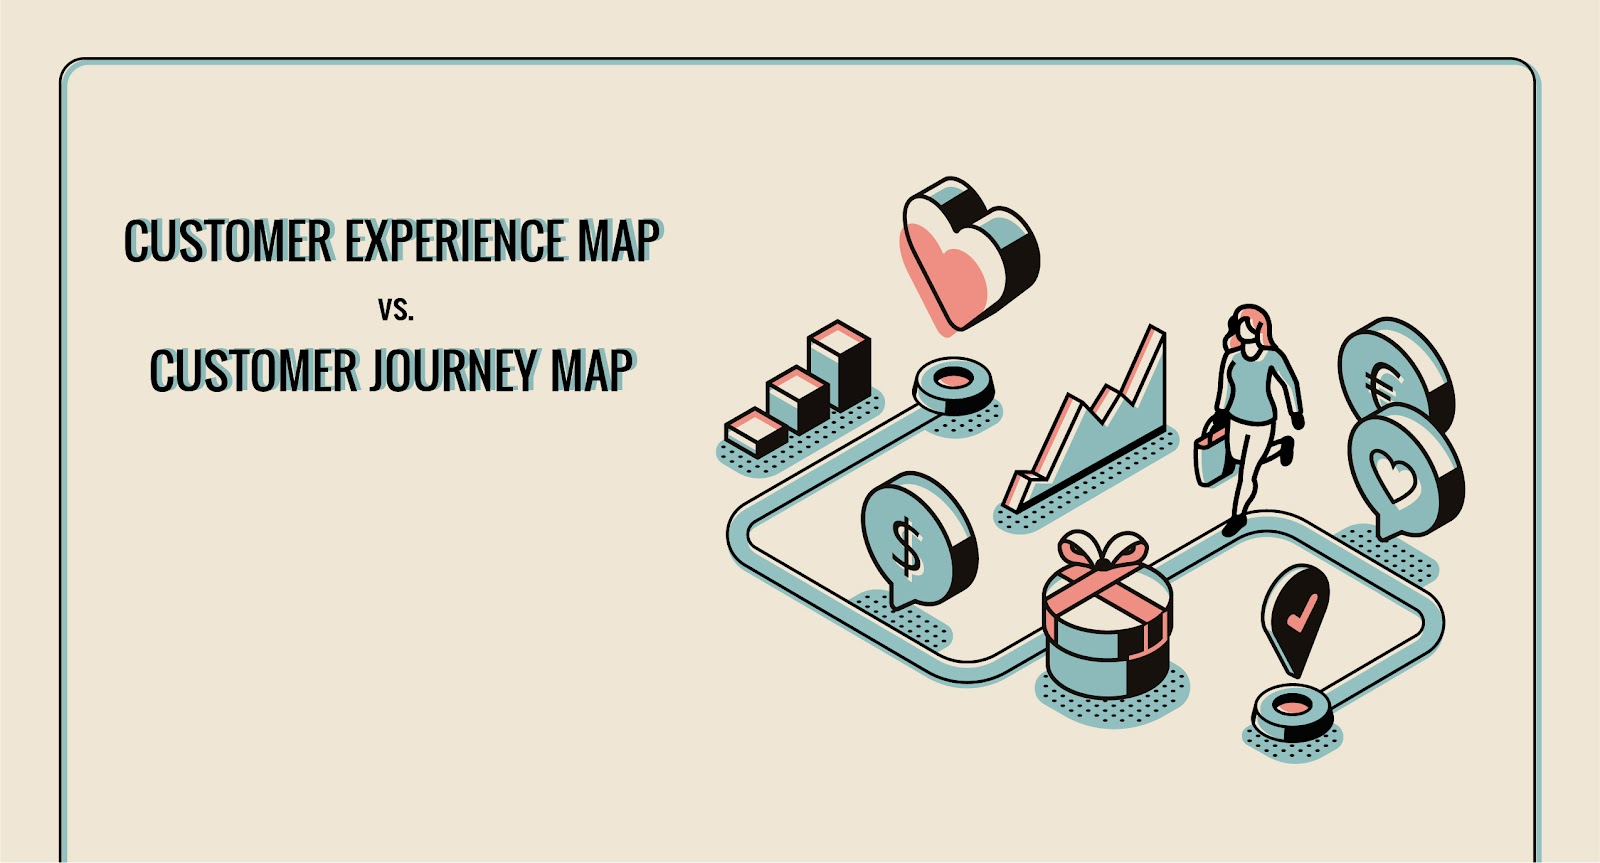 Customer experience map vs Customer journey map